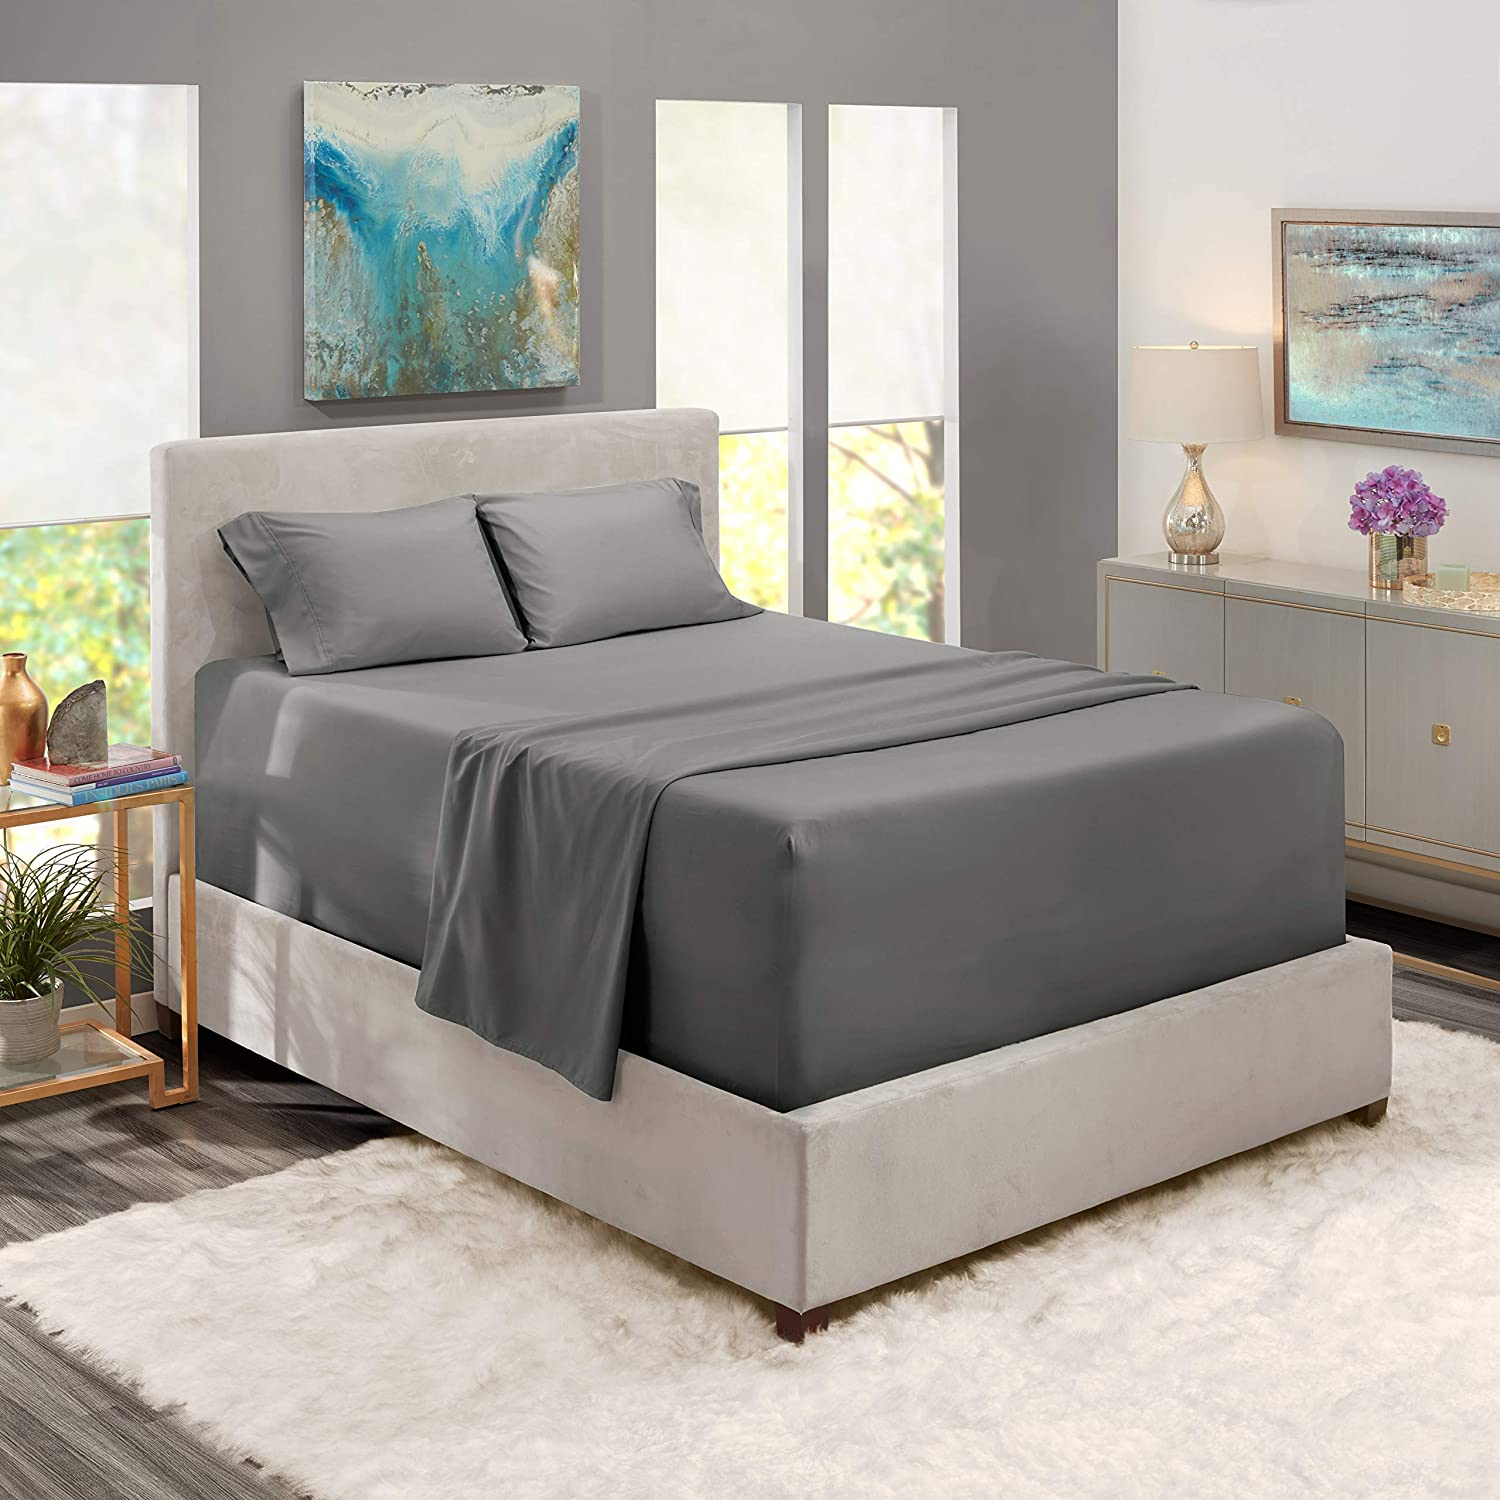 BSC Collection Luxury 4 Piece Bed Sheet Set 18